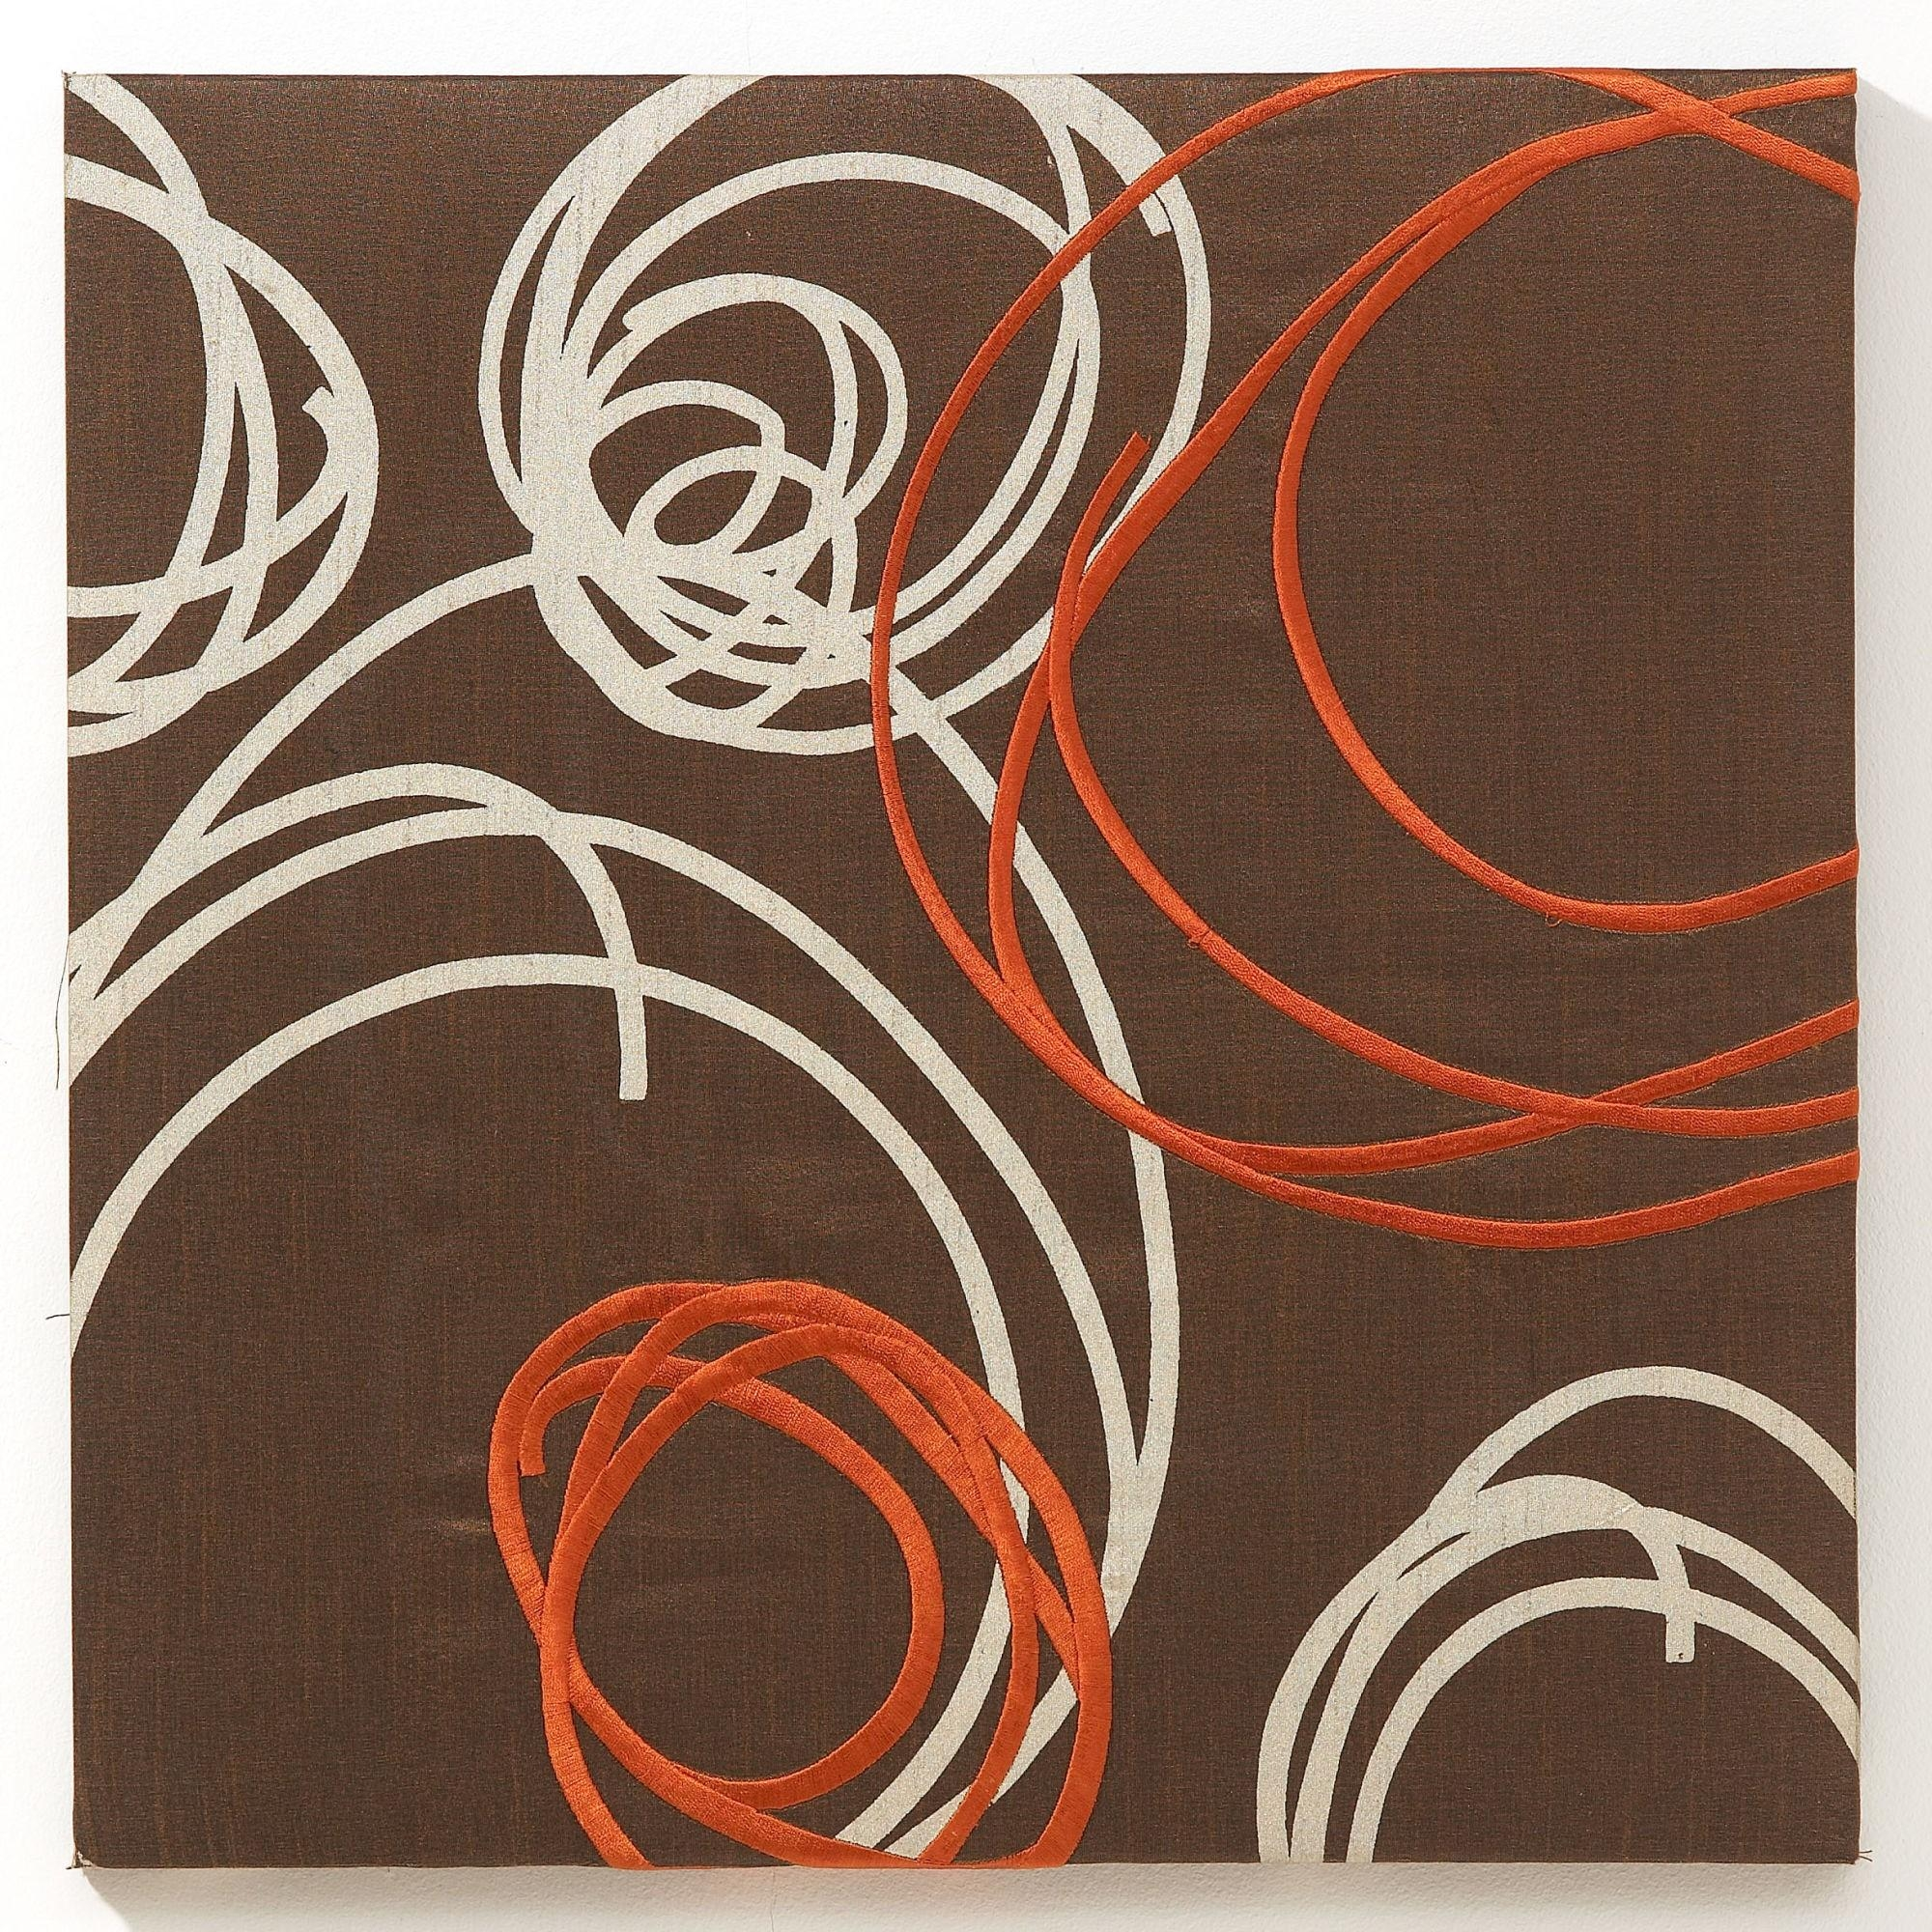 Wall Art Designs: Orange Wall Art Orange Wall Art Wood Wall Art Throughout Graham & Brown Wall Art (View 16 of 20)